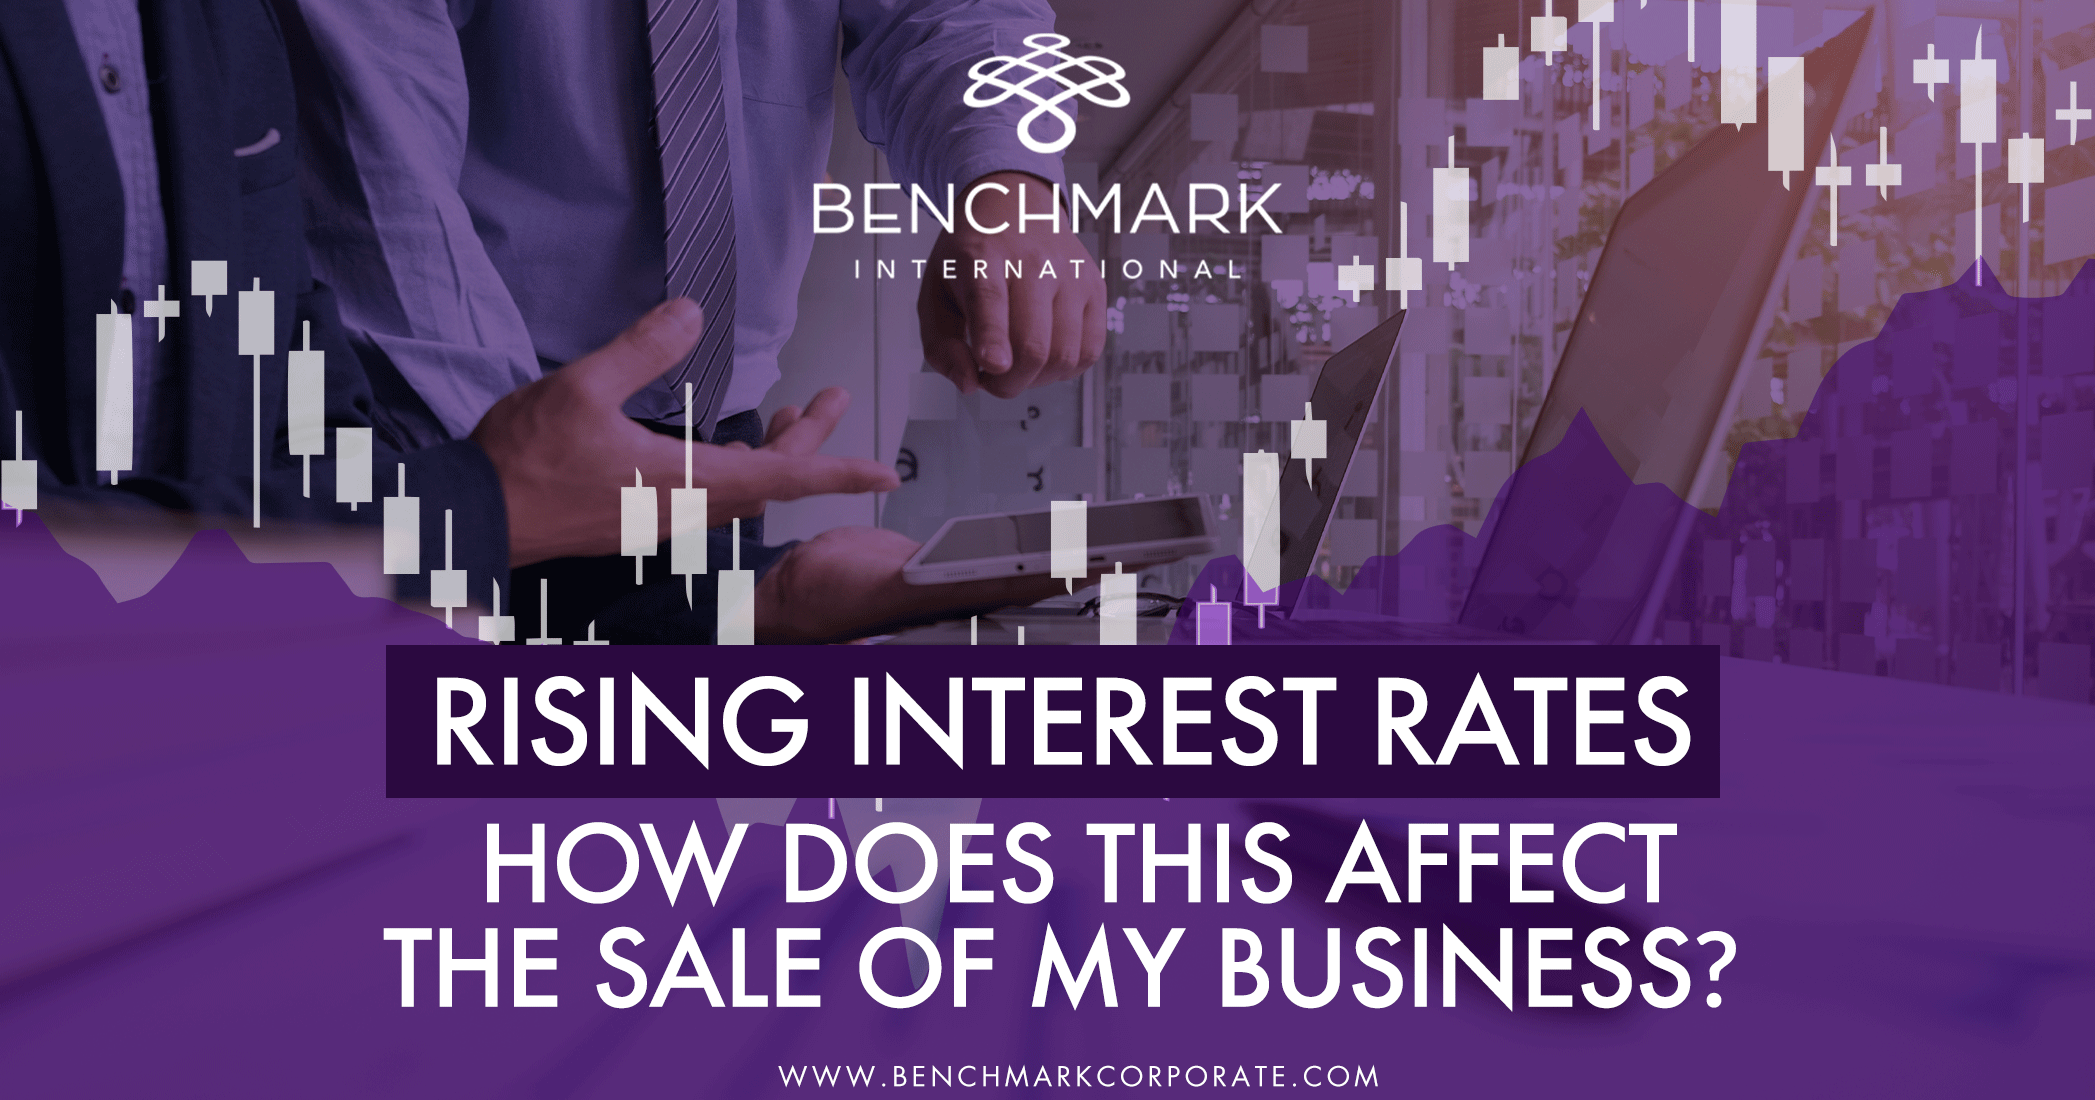 Rising Interest Rates – How Does This Affect the Sale of My Business?